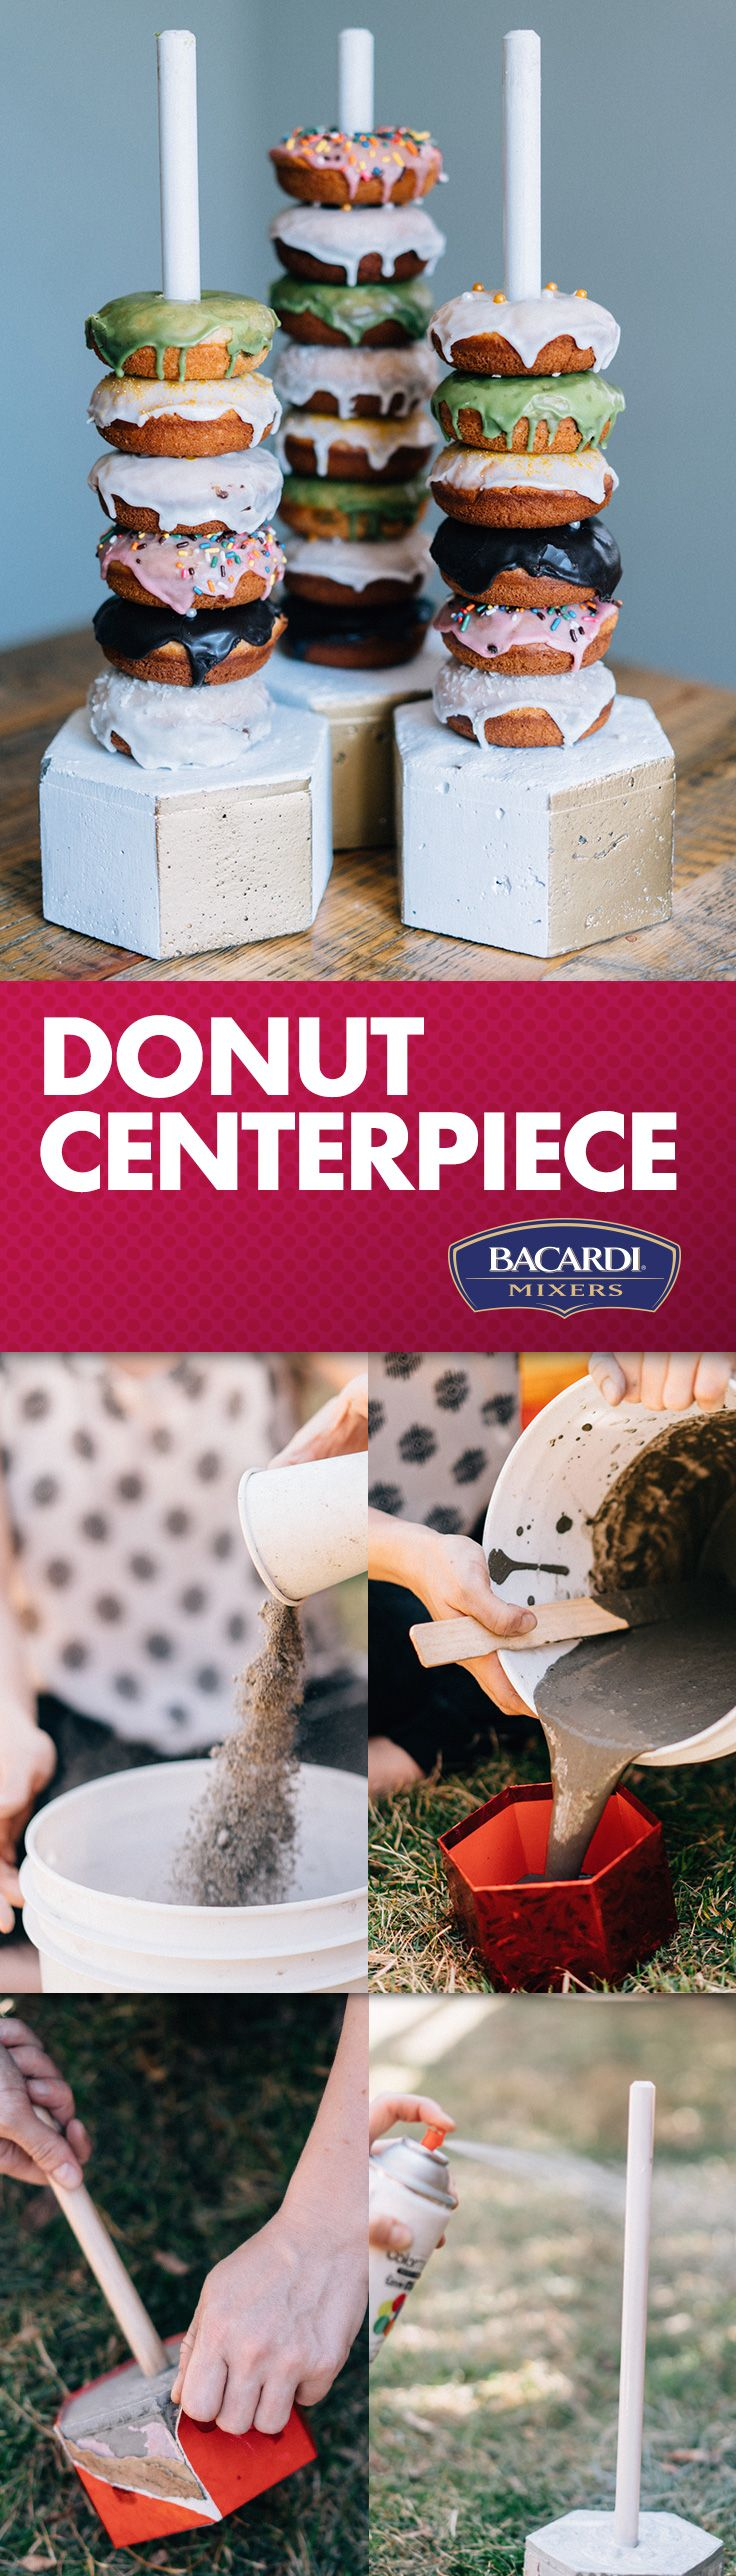 Take your brunch décor from tame to insane with this easy DIY donut centerpiece and make your appetizer the main attraction!